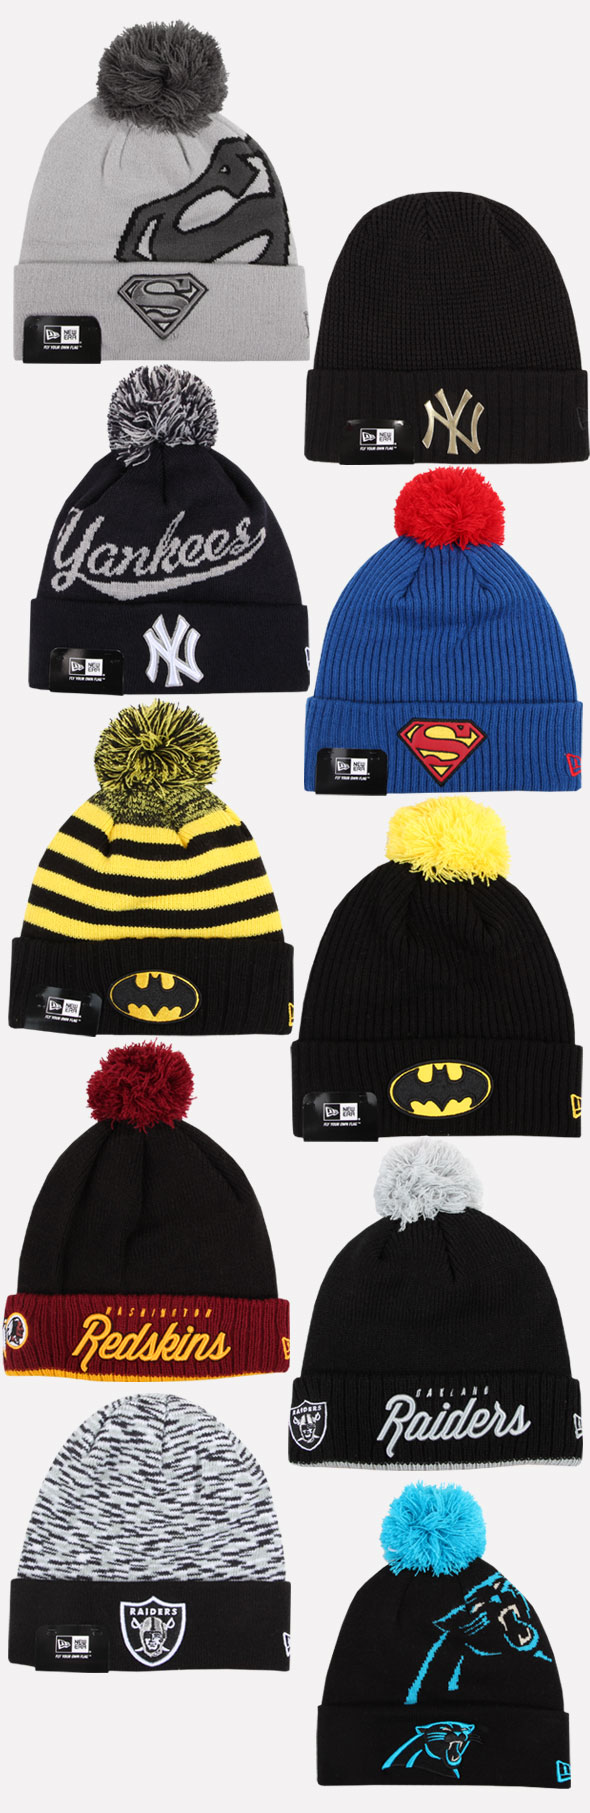 New Era Beanie Winter Hat Cap Yankees Redskins Raiders Superman ... 5ebb15b5b62